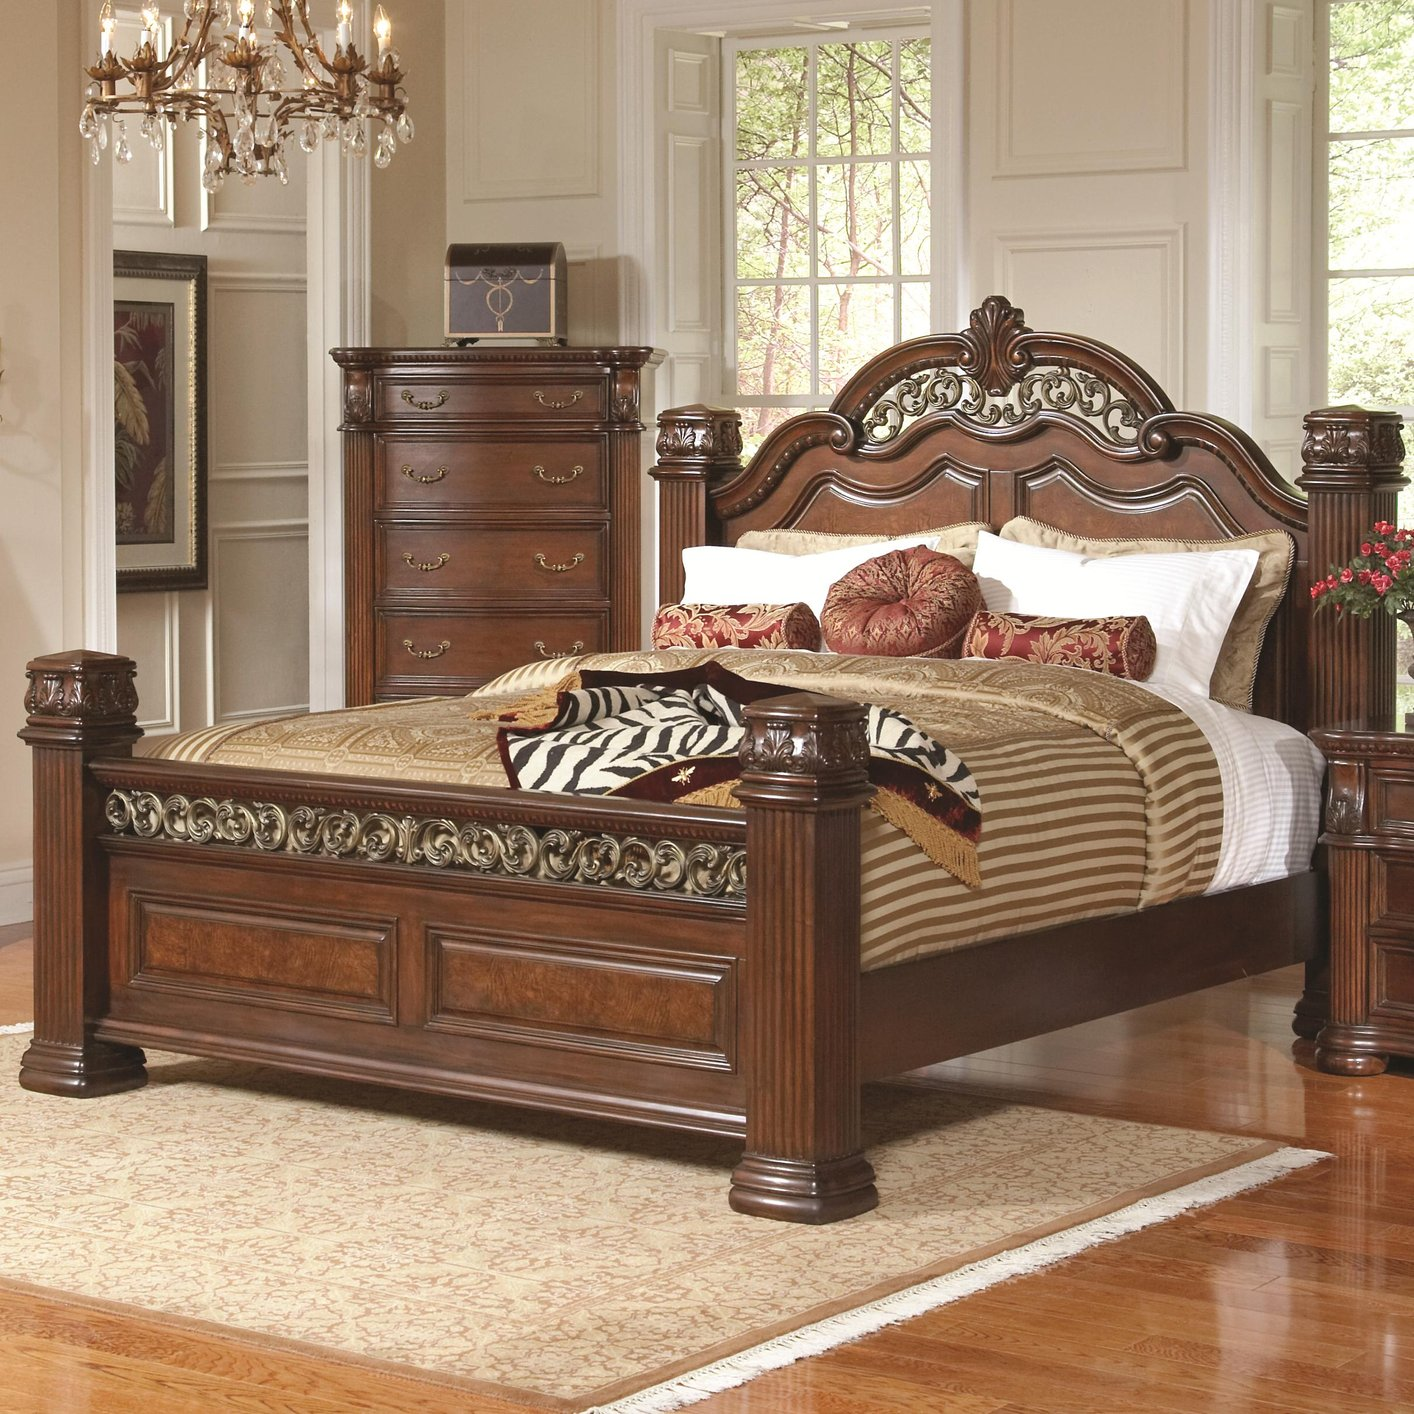 brown wood california king size bed - California King Wood Bed Frame